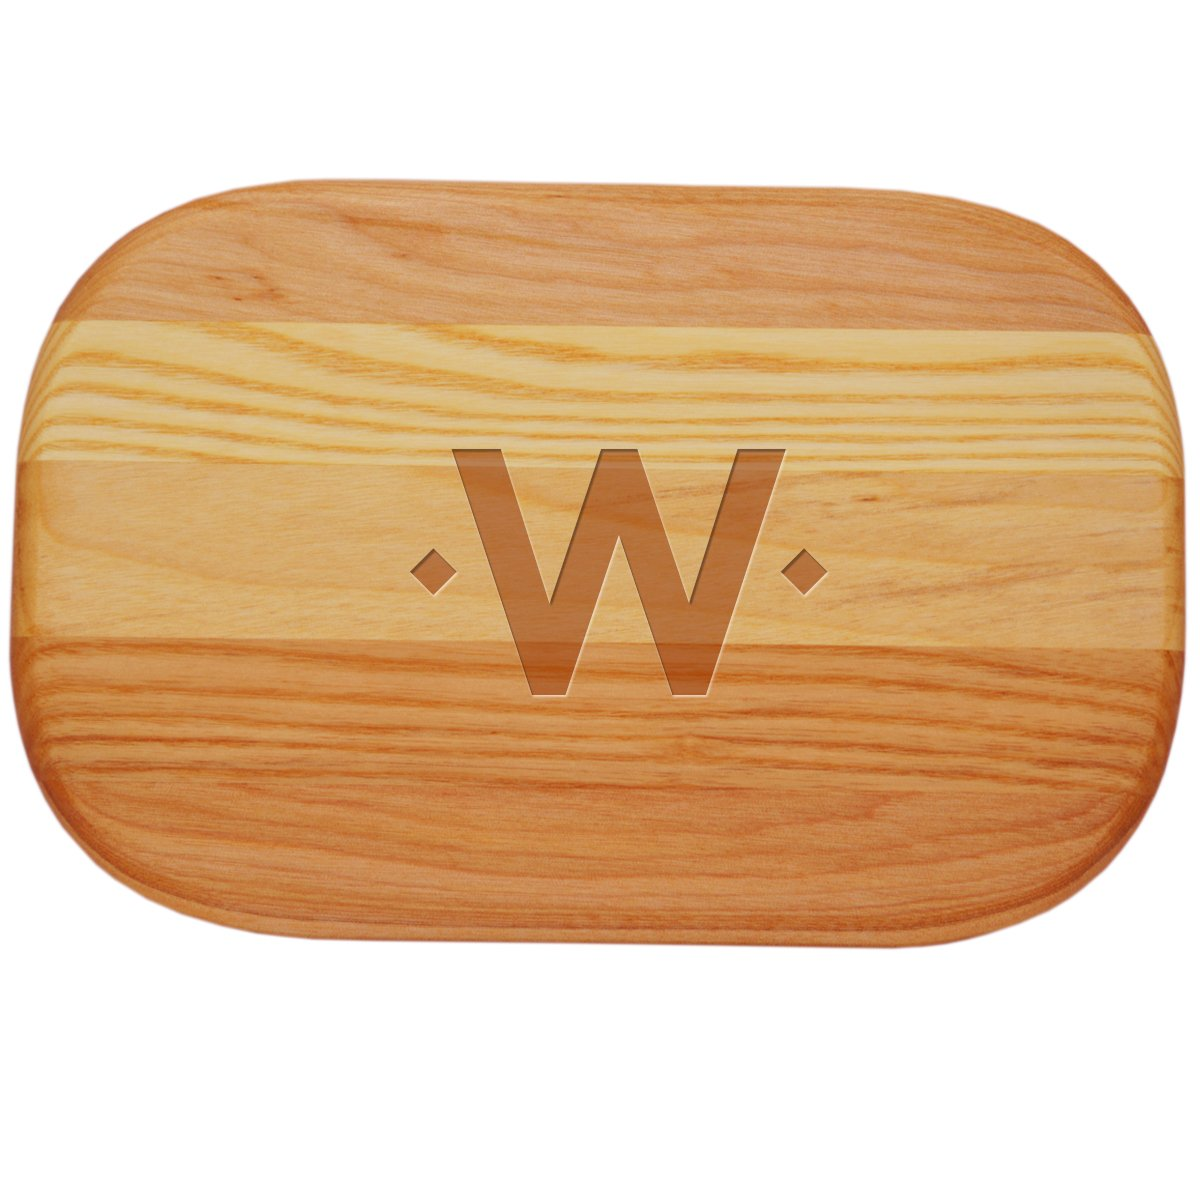 Carved Solutions 735255447071  Small Everyday Board with Etched Double Diamond initial Q.